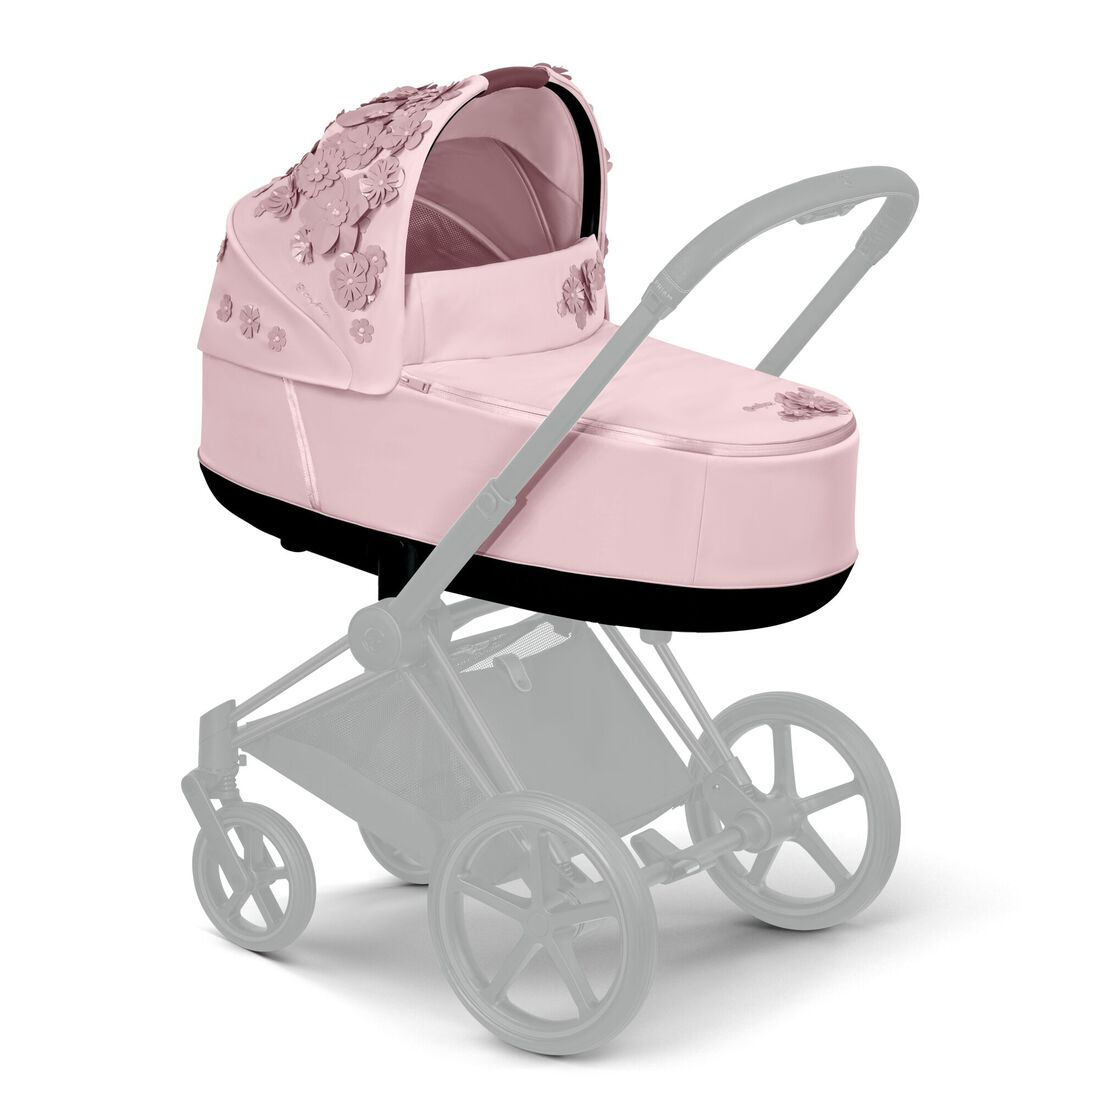 CYBEX Priam Lux Carry Cot - Pale Blush in Pale Blush large image number 5